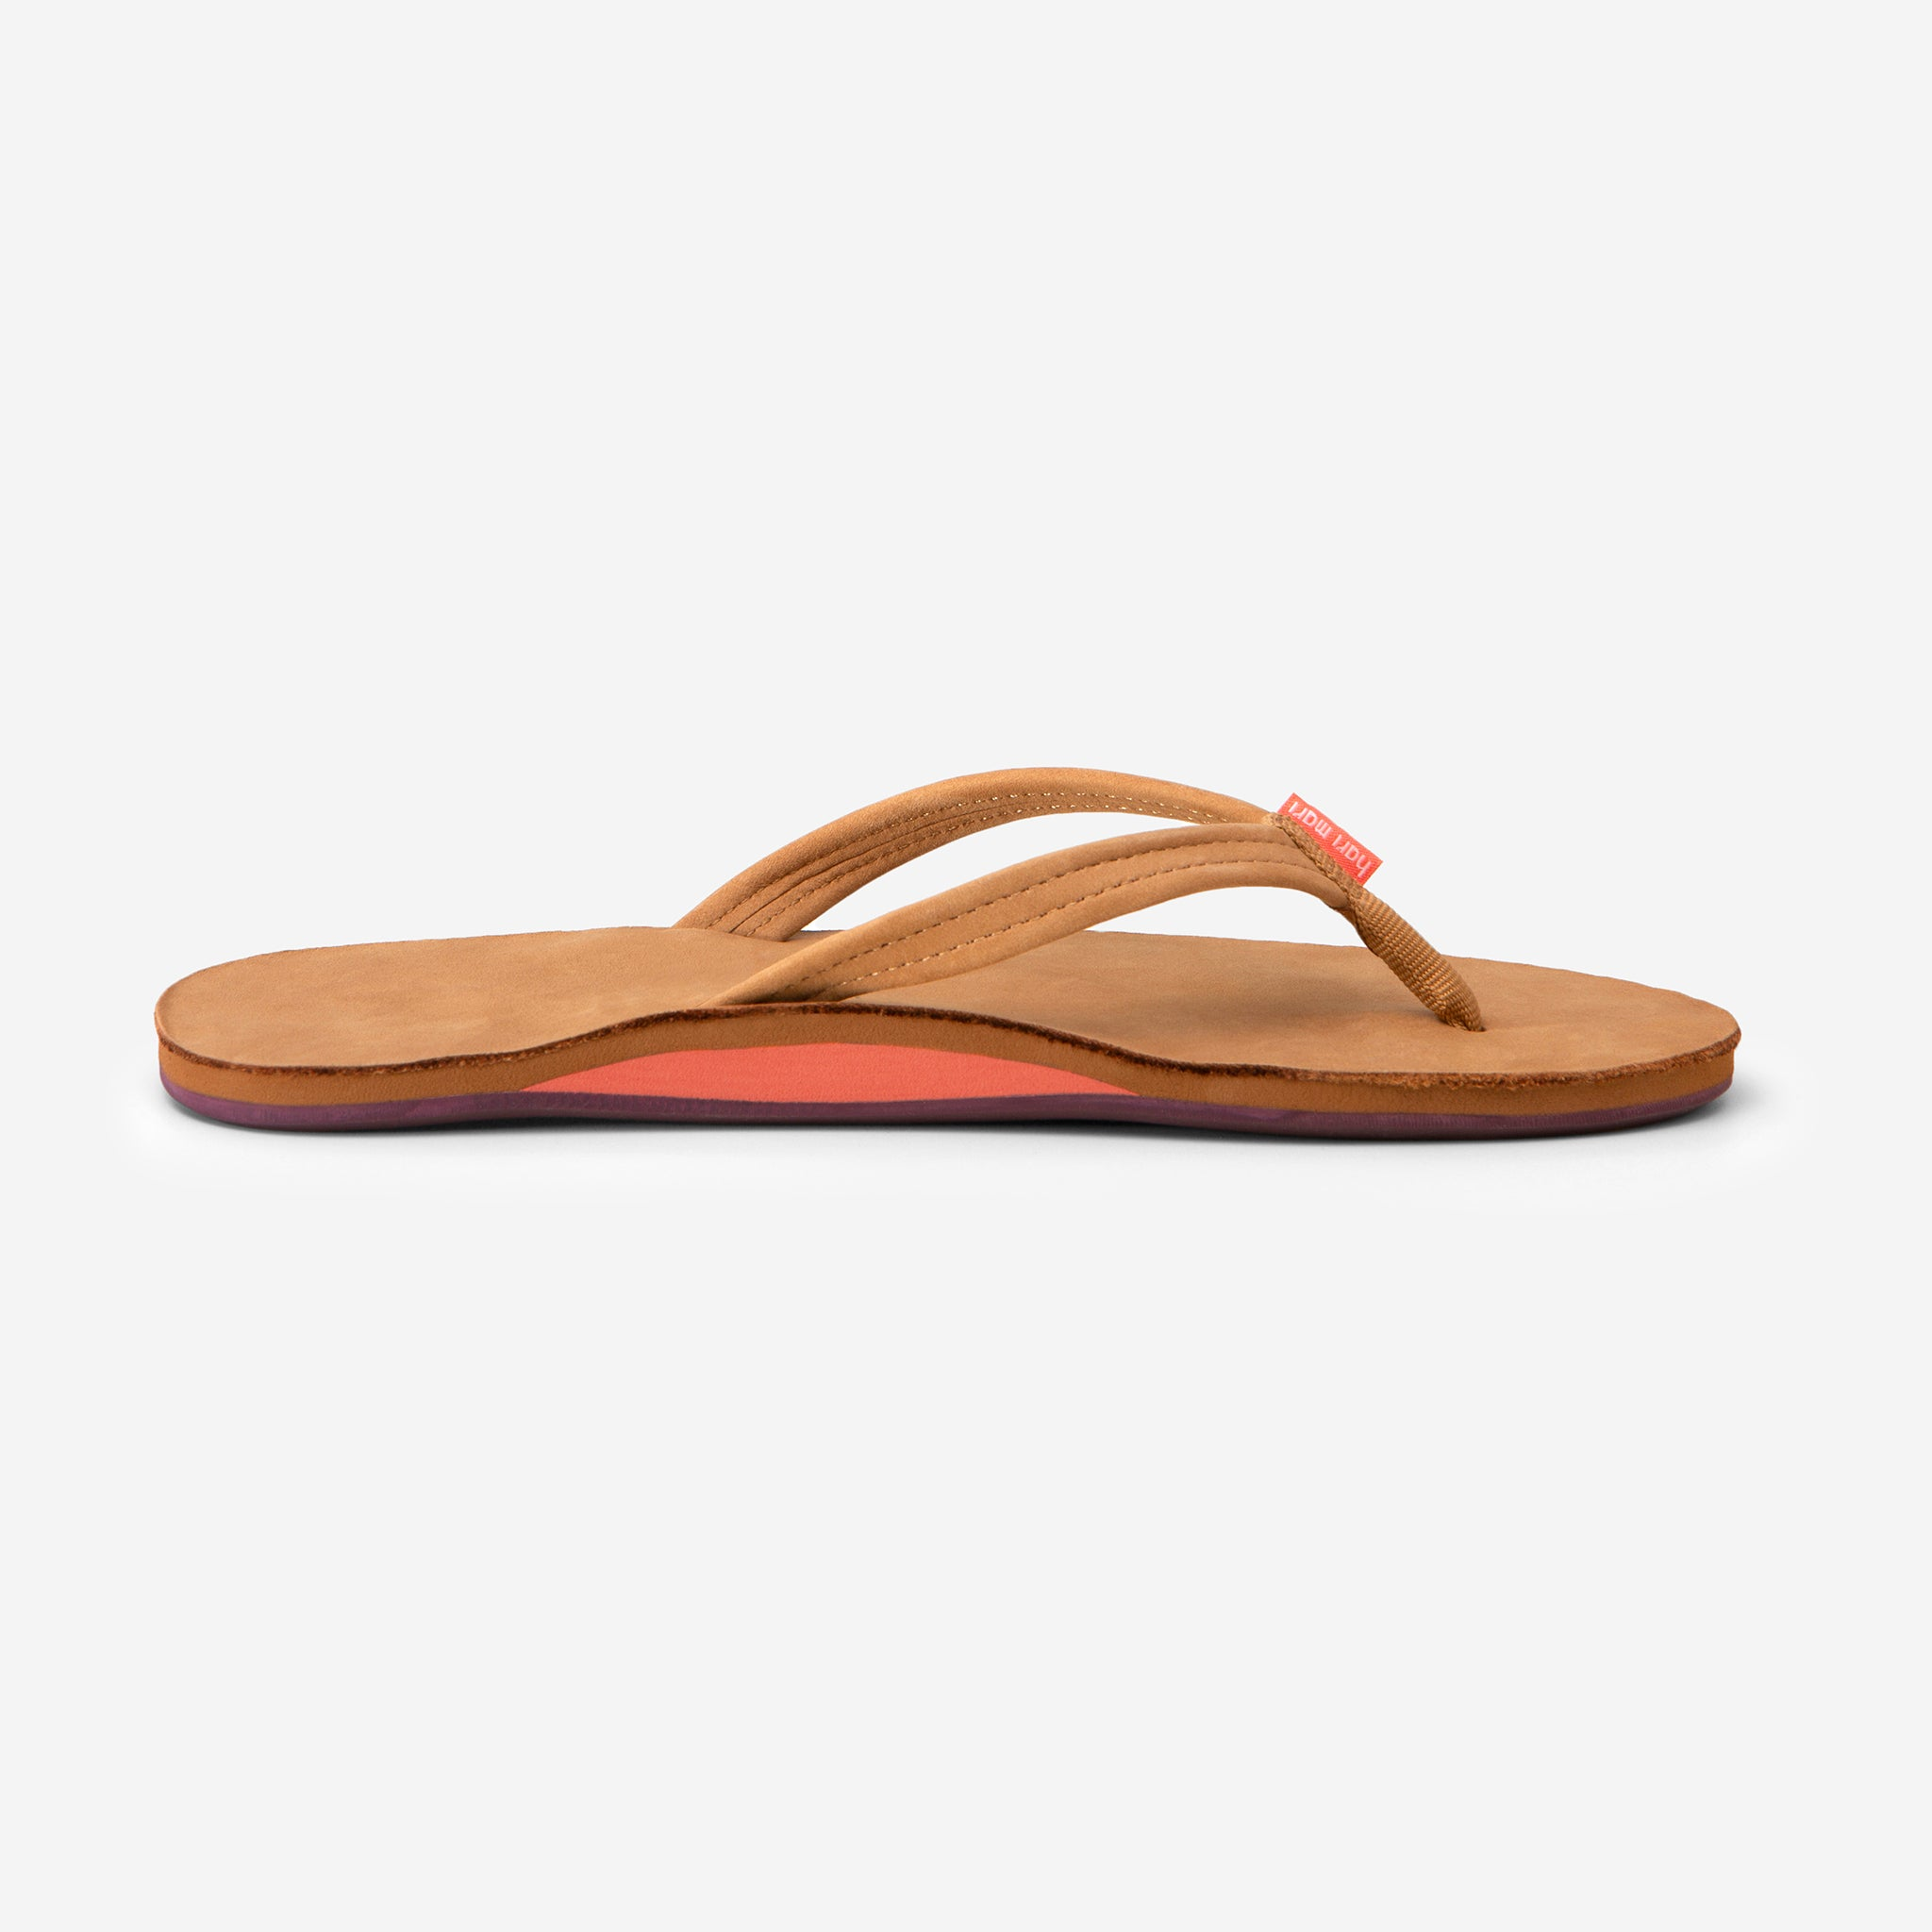 side profile of Hari Mari Women's fields flip flops in tan/fig on white background